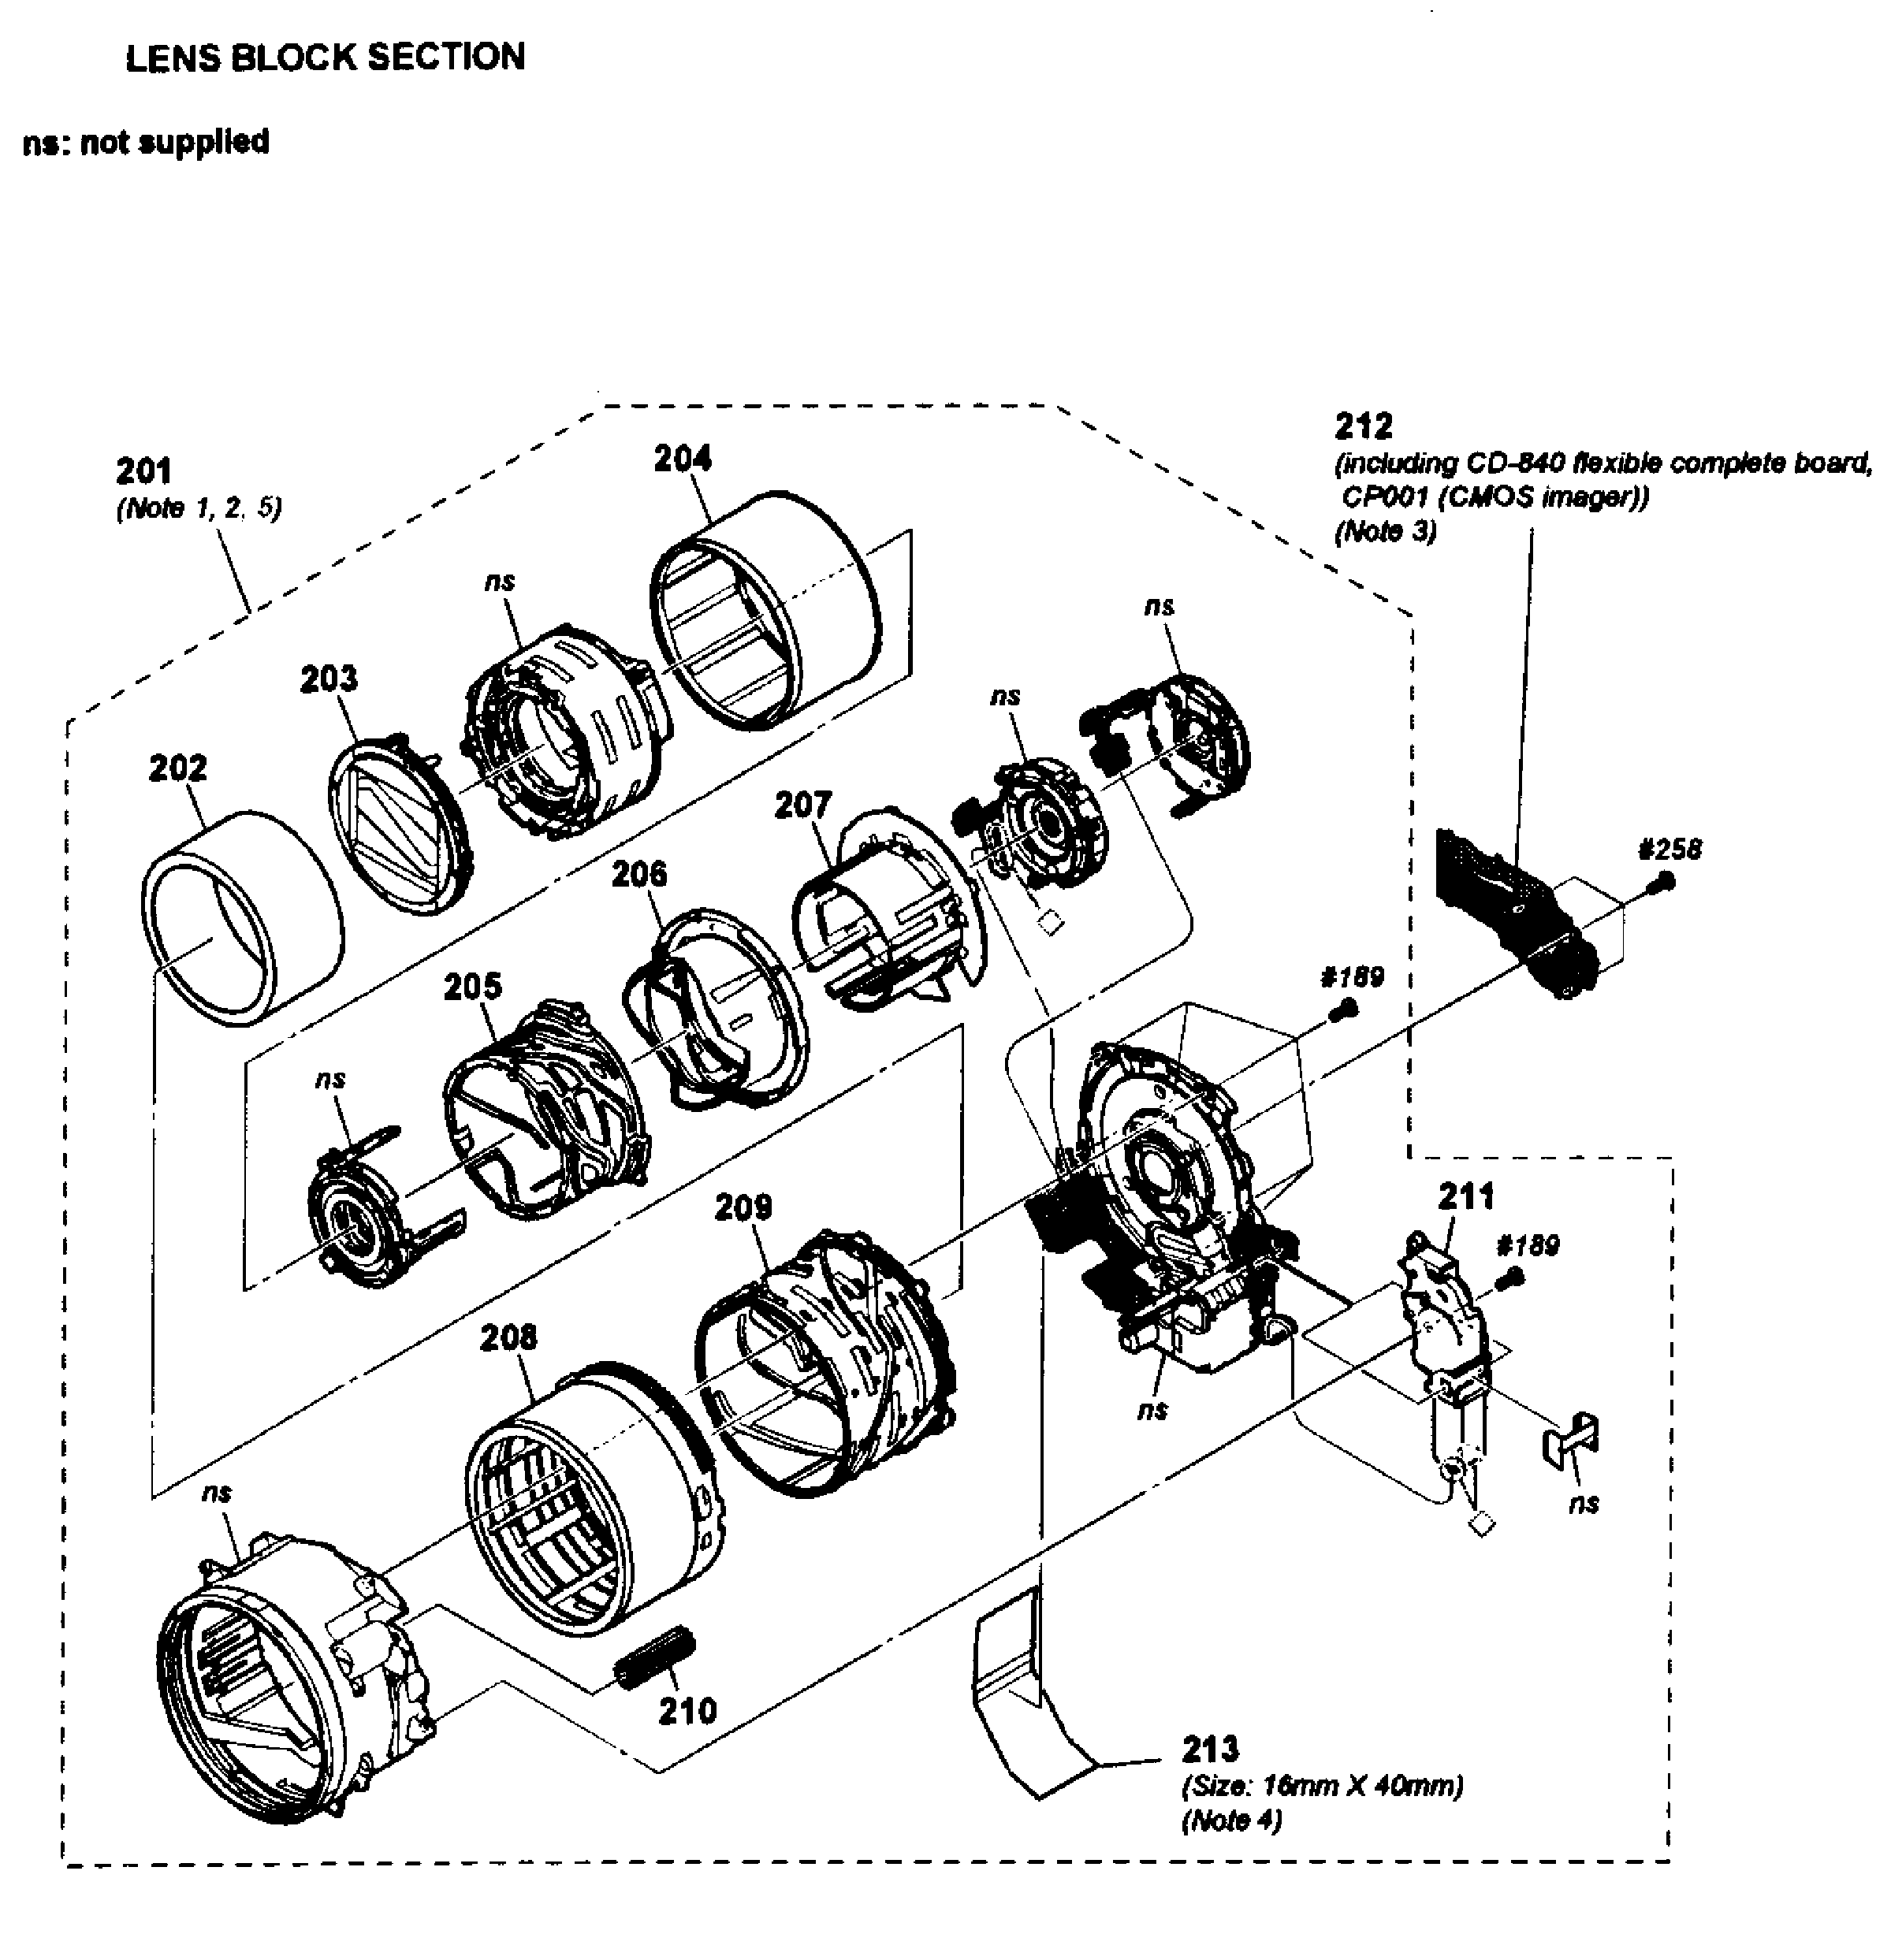 Camera Lens Parts Diagram : 25 Wiring Diagram Images